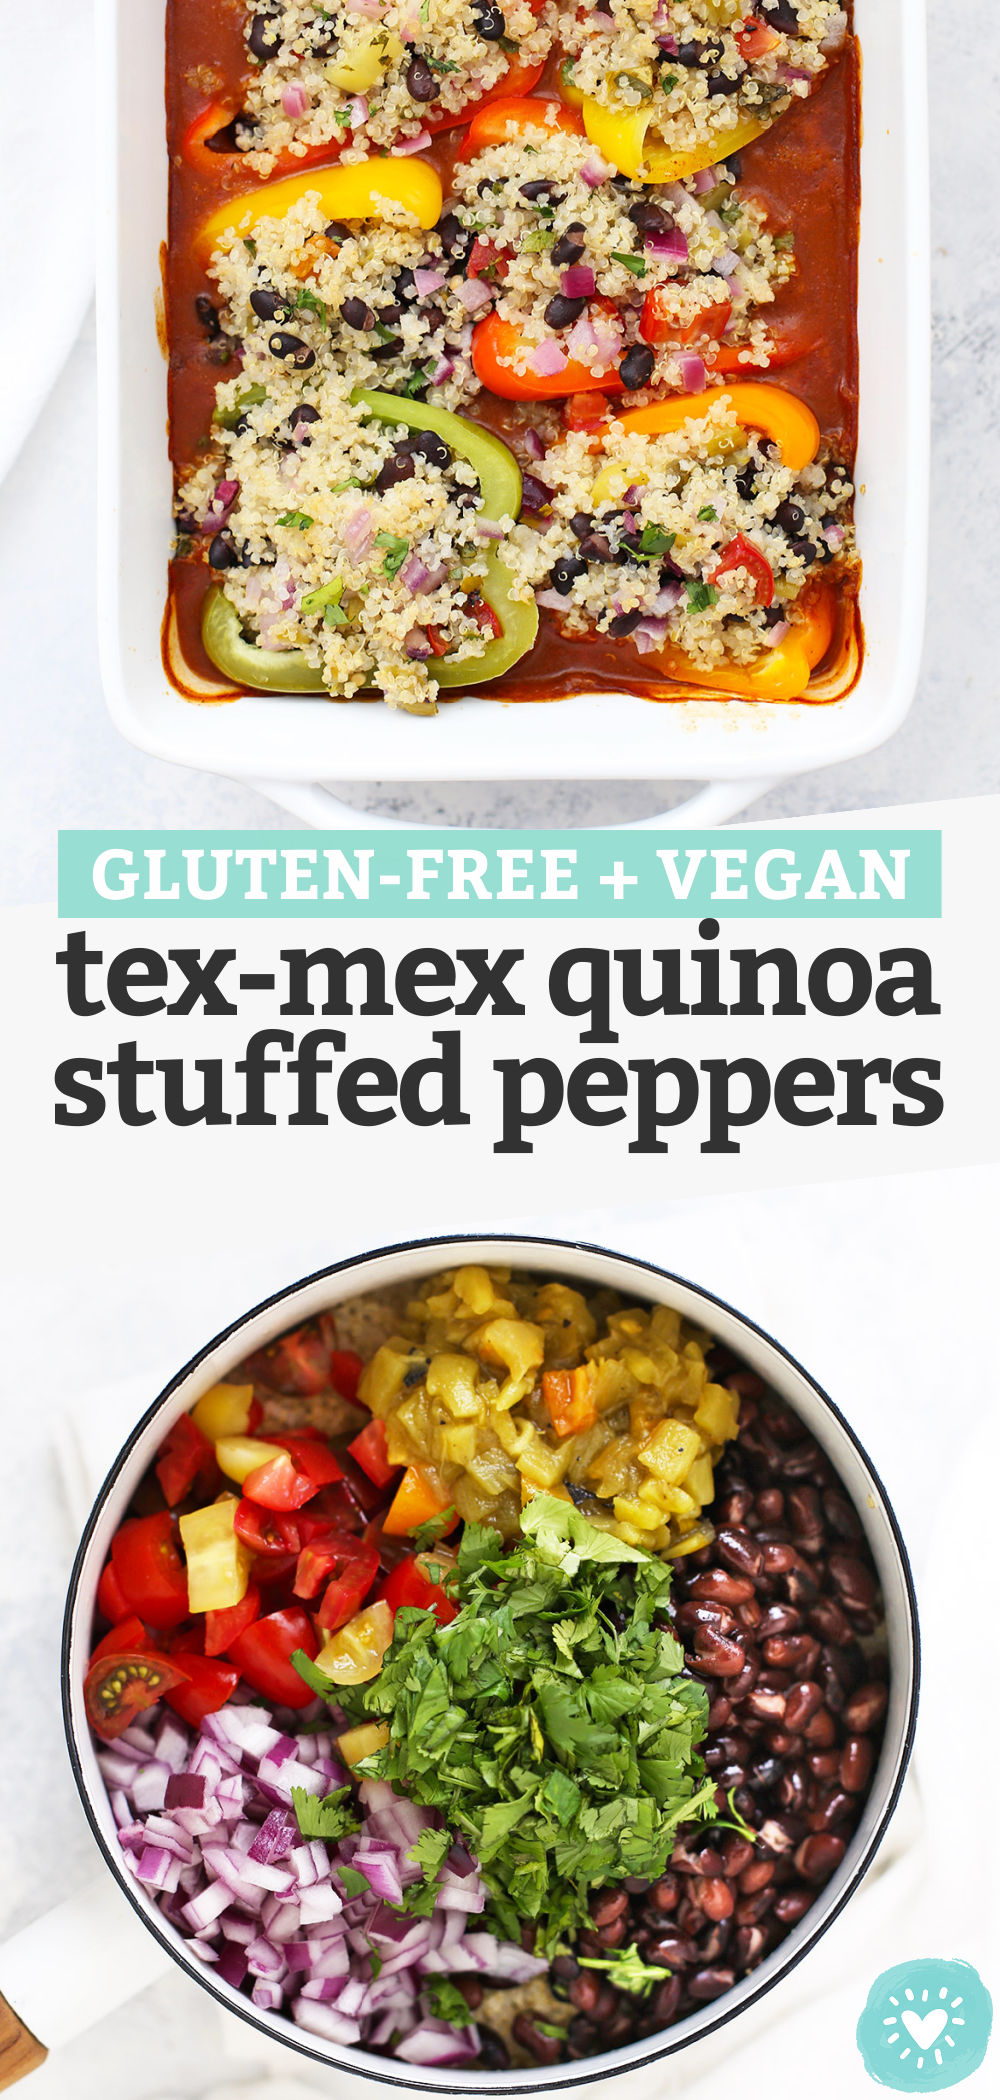 Mexican Stuffed Peppers with Quinoa and Black Beans - This gluten free, vegan dinner is SO GREAT for meal prep! (Don't skip the easy homemade enchilada sauce!) // Tex Mex Quinoa Stuffed Peppers // Vegan Stuffed Peppers #stuffedpeppers #vegandinner #healthydinner #vegan #glutenfree